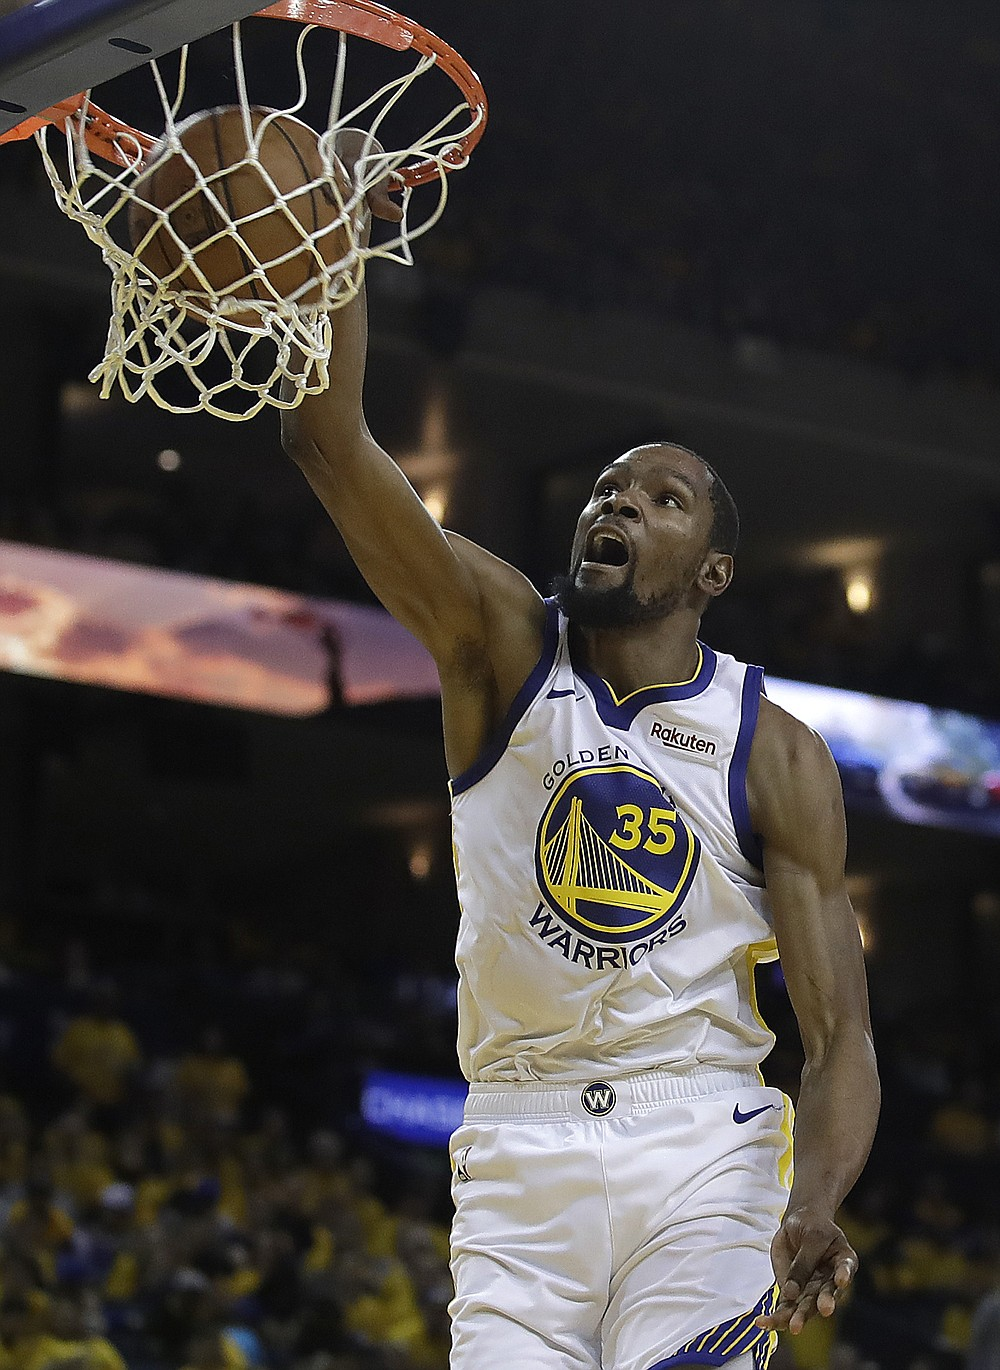 FILE - In this April 13, 2019, file photo, then-Golden State Warriors' Kevin Durant scores against the Los Angeles Clippers in the second half in Game 1 of a first-round NBA basketball playoff series in Oakland, Calif. Kevin Durant is finally within weeks of suiting up for the Brooklyn Nets. Sidelined last season while recovering from surgery on his Achilles tendon, he begins training camp this week on a team that can contend for the NBA title if he can be as good as he was before his injury. (AP Photo/Ben Margot, File)